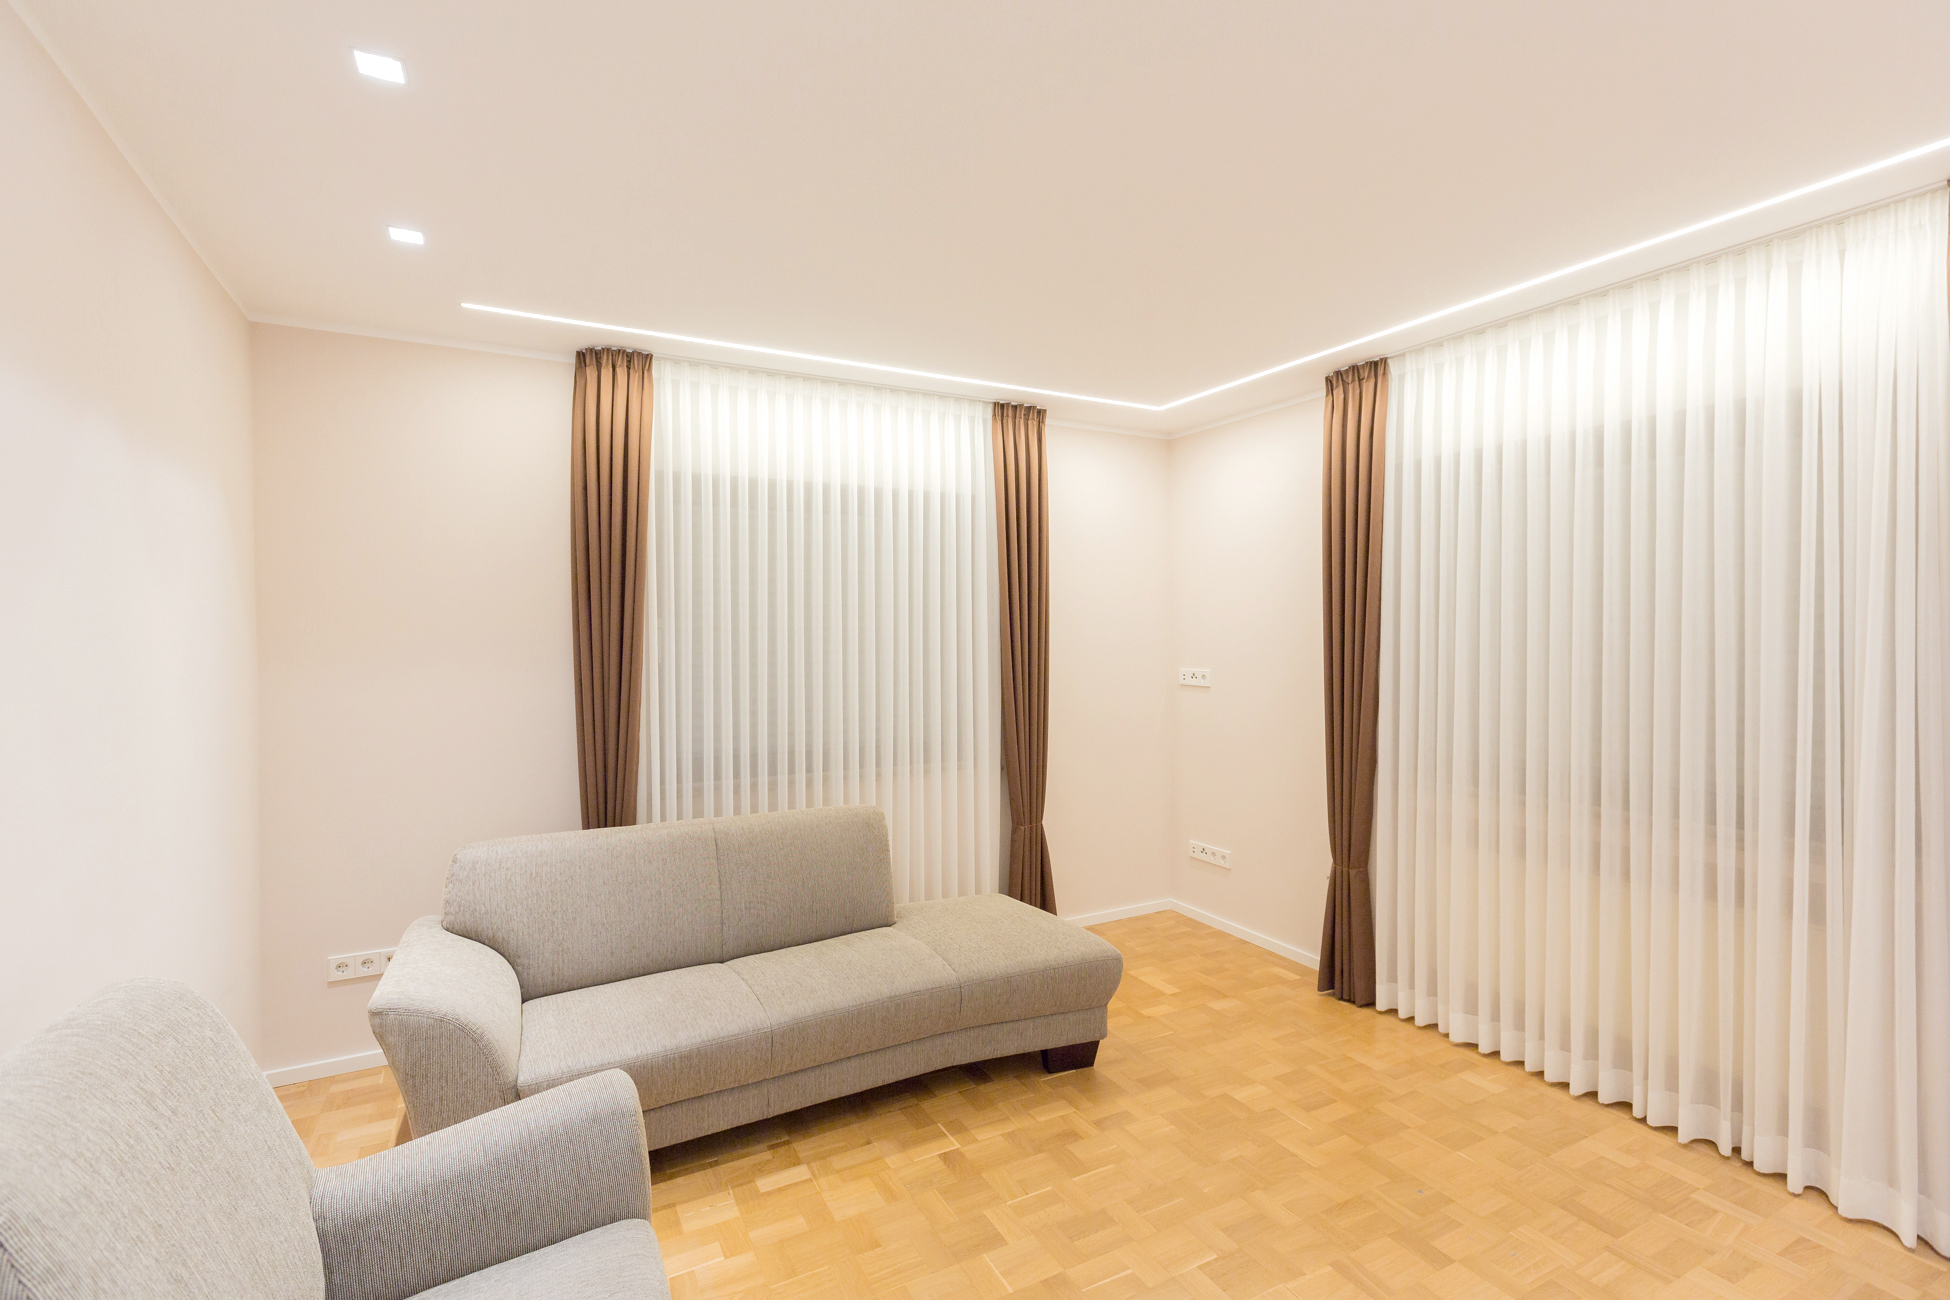 Full Size of Led Beleuchtung Wohnzimmer Decke Led Beleuchtung Wohnzimmer Planen Beleuchtung Wohnzimmer Led Spots Led Beleuchtung Wohnzimmer Tipps Wohnzimmer Led Beleuchtung Wohnzimmer